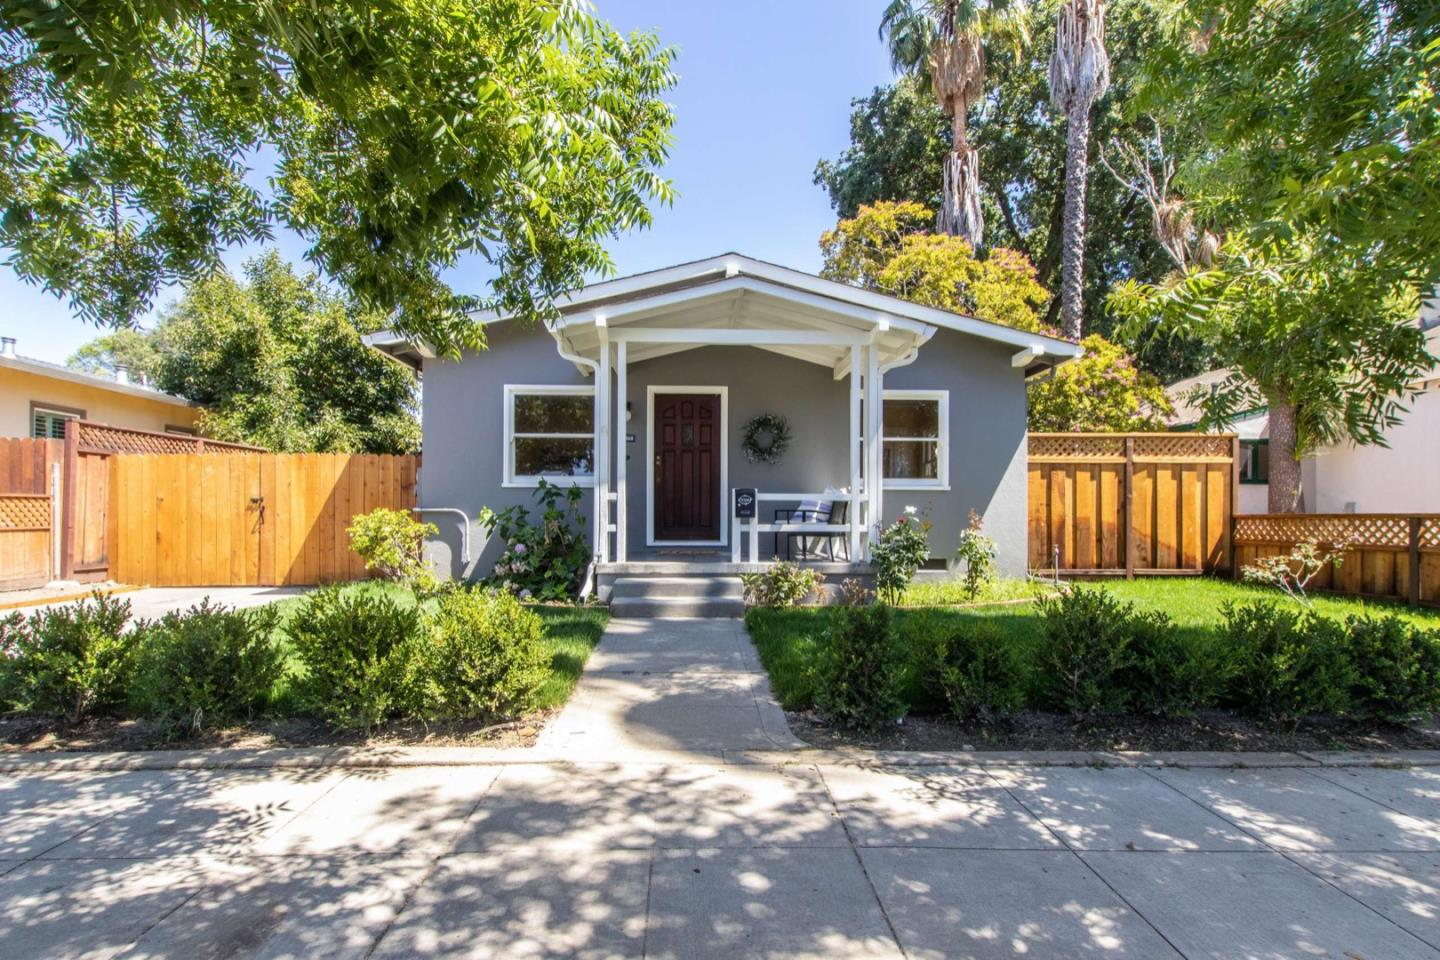 """The number one choice for your next home is on First Street! This quintessential Bungalow with 2 bedrooms & 1 bath has been tastefully updated with new paint in and out, refinished flooring, new kitchen cabinets and appliances, new light fixtures, new hardware, newer heating system, upgraded electrical, new landscaping/fencing and so much more! Long driveway, detached two car garage, and incredible proximity to downtown are only a few of the many, many reasons you will want to call this house your home! Easy access to both Highway 580 and 680 so any commute is a breeze! There is not enough room nor adjectives to describe what a great living experience this home will provide so be sure to put it at the top of your list of """"must see"""" homes today!"""